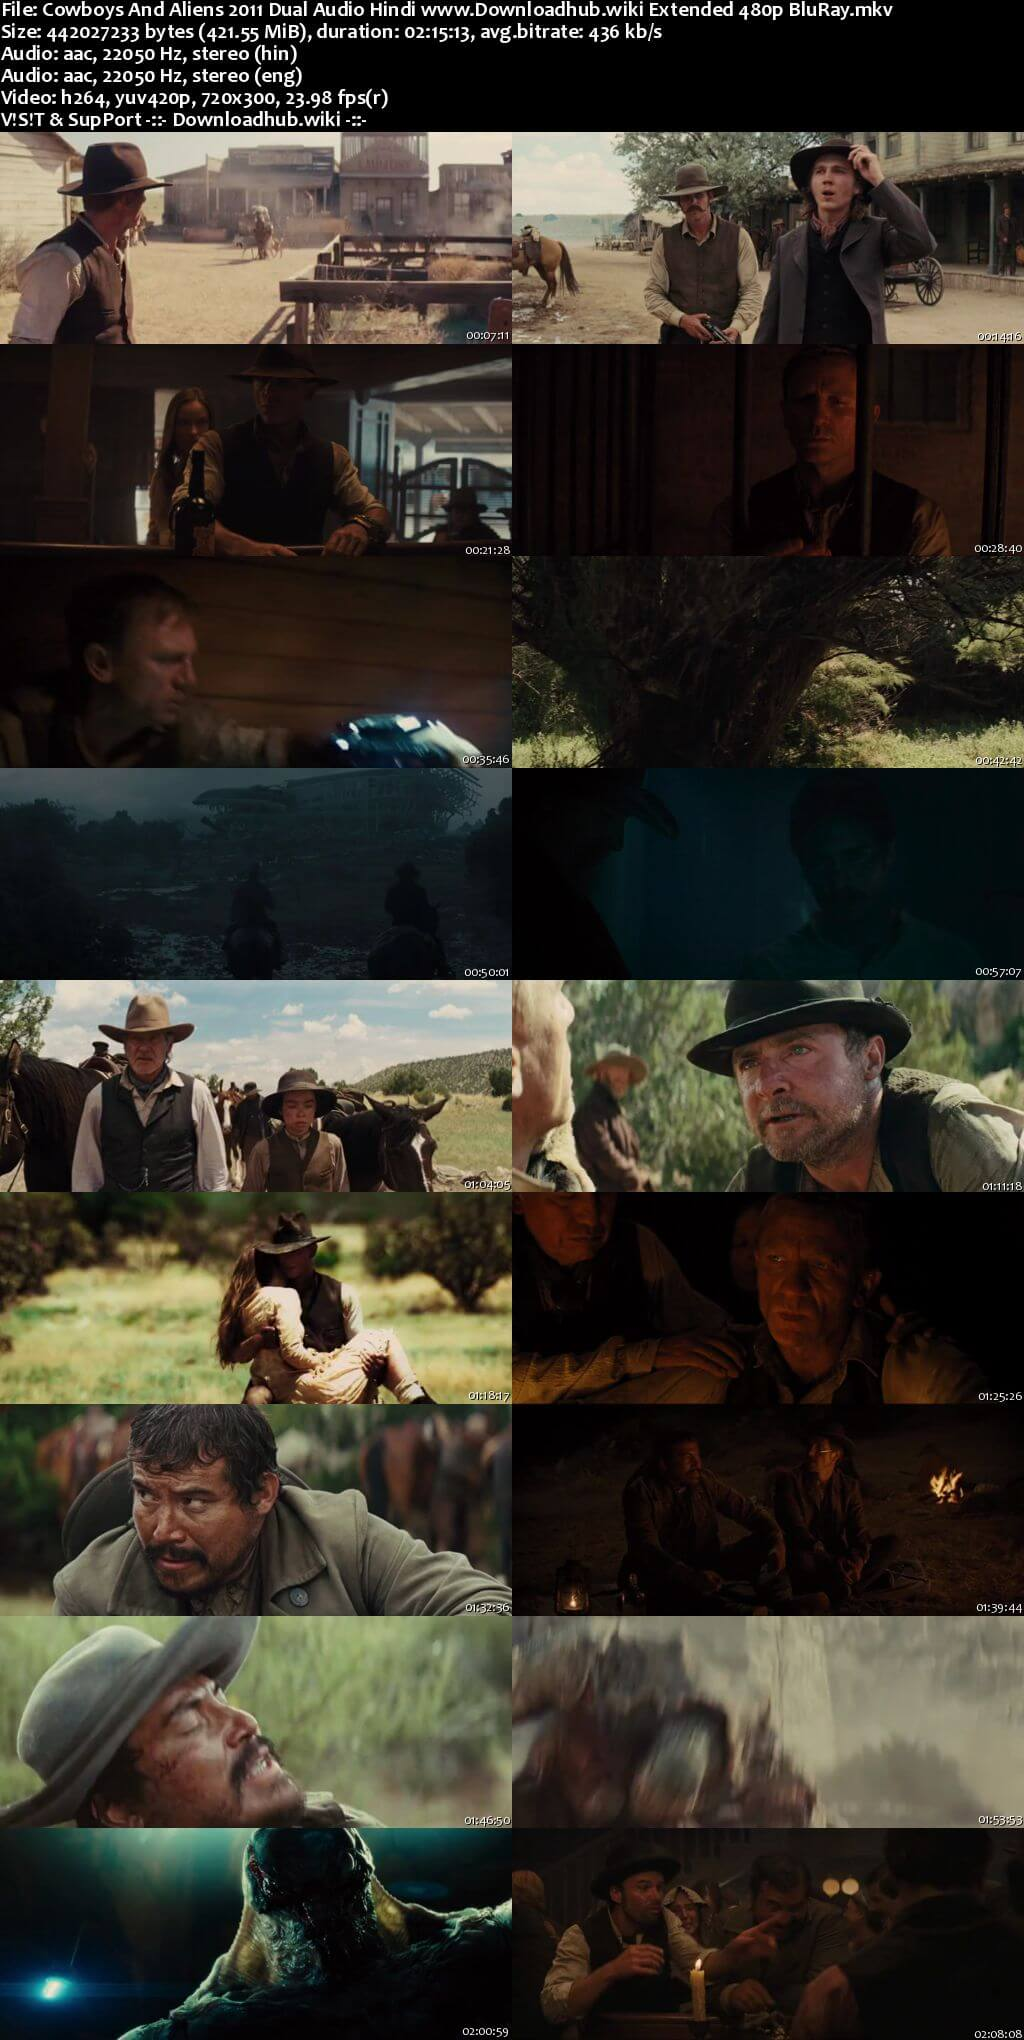 Cowboys And Aliens 2011 Hindi Dual Audio 400MB EXTENDED BluRay 480p ESubs